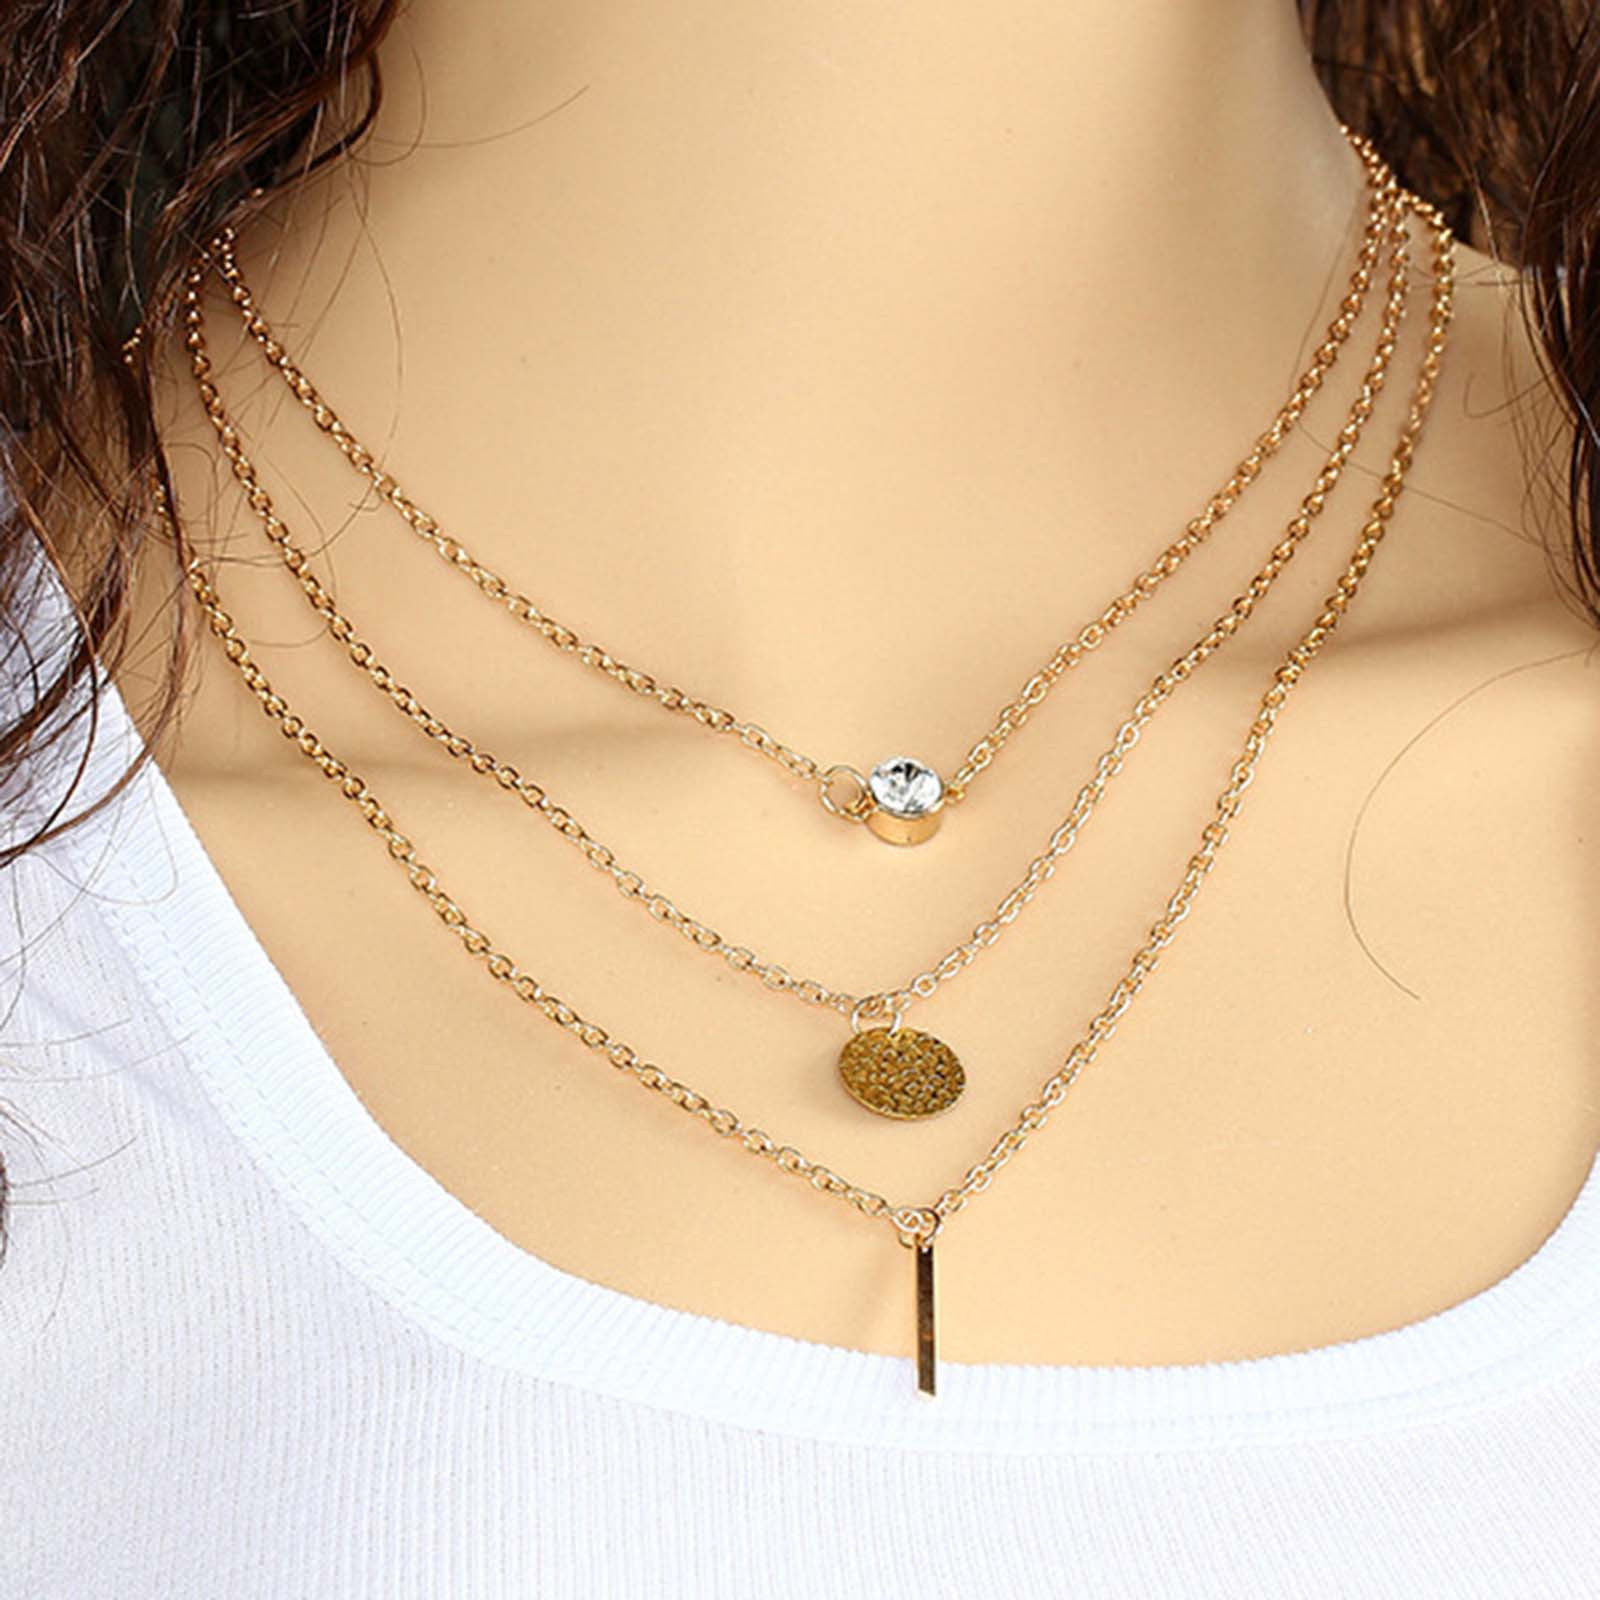 Women's Moon Star Necklace Choker Necklace Gold Silver Long Chain Jewelry Valentine's Day Necklace Female Fahson Jewelry L3